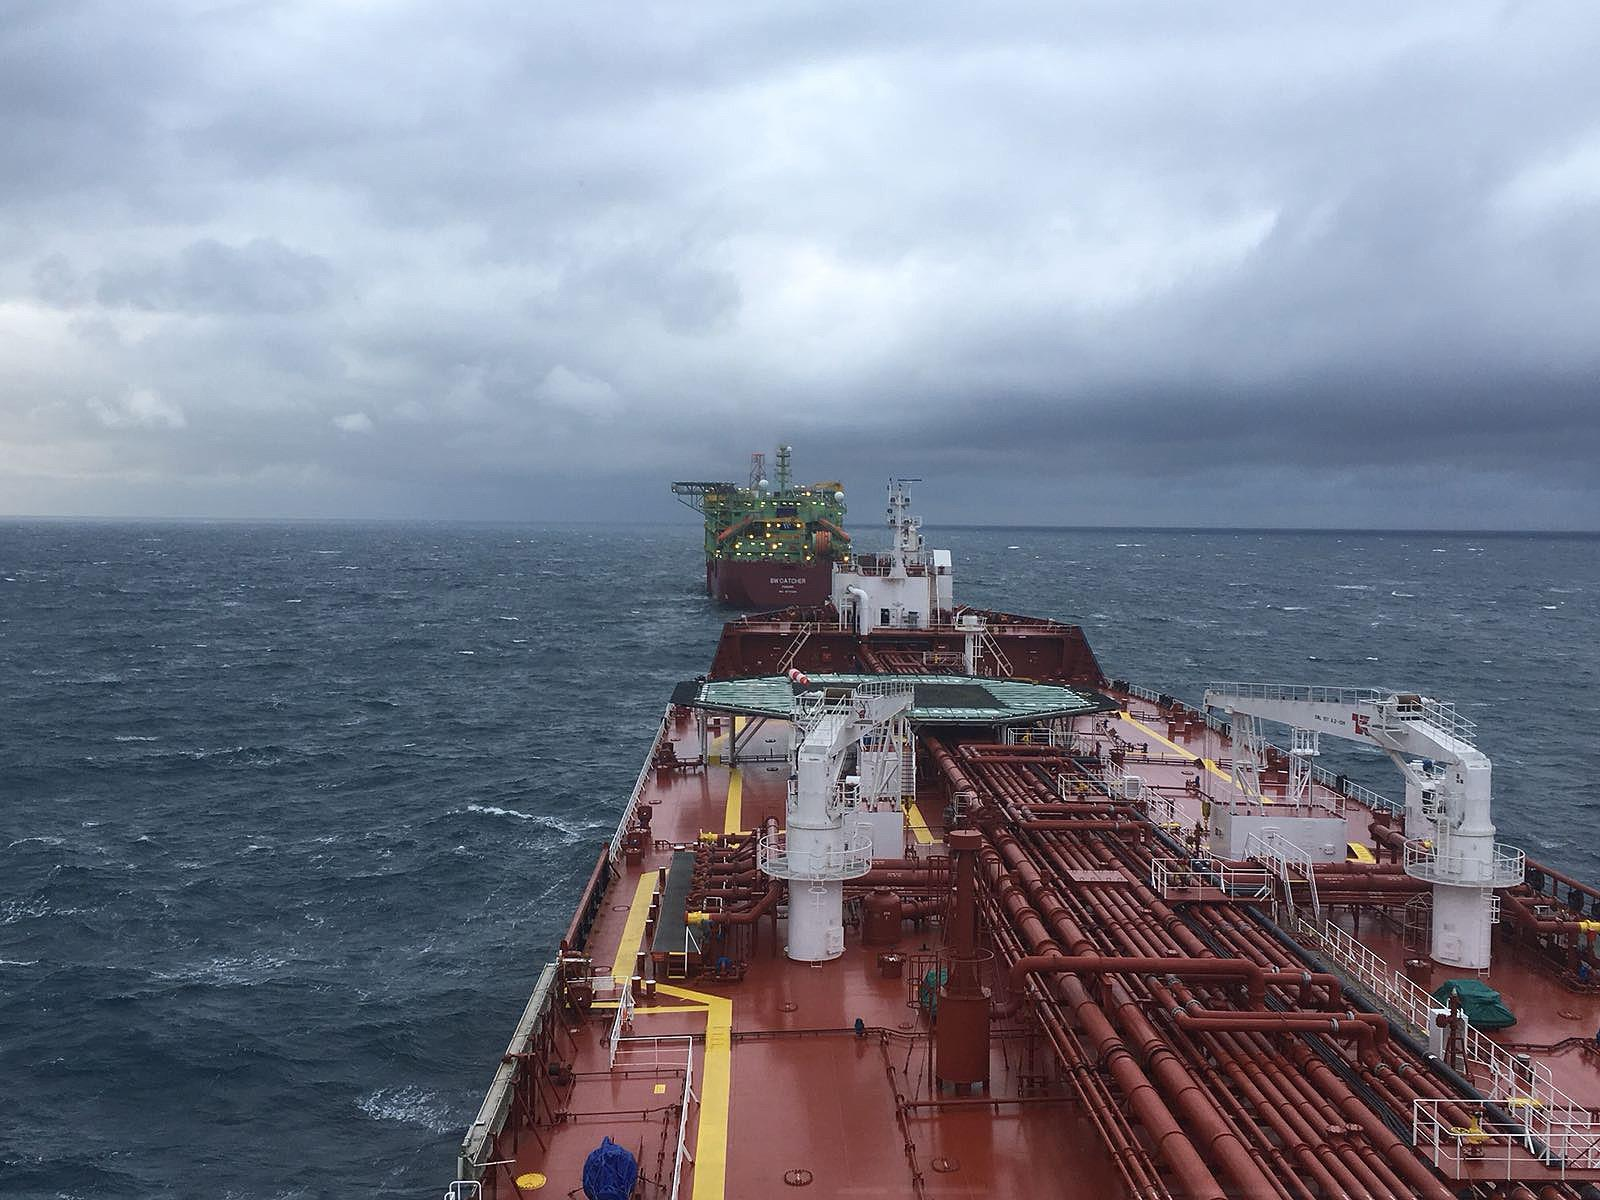 A cargo of crude oil is lifted from the Catcher field developed by Cairn Energy and Premier Oil